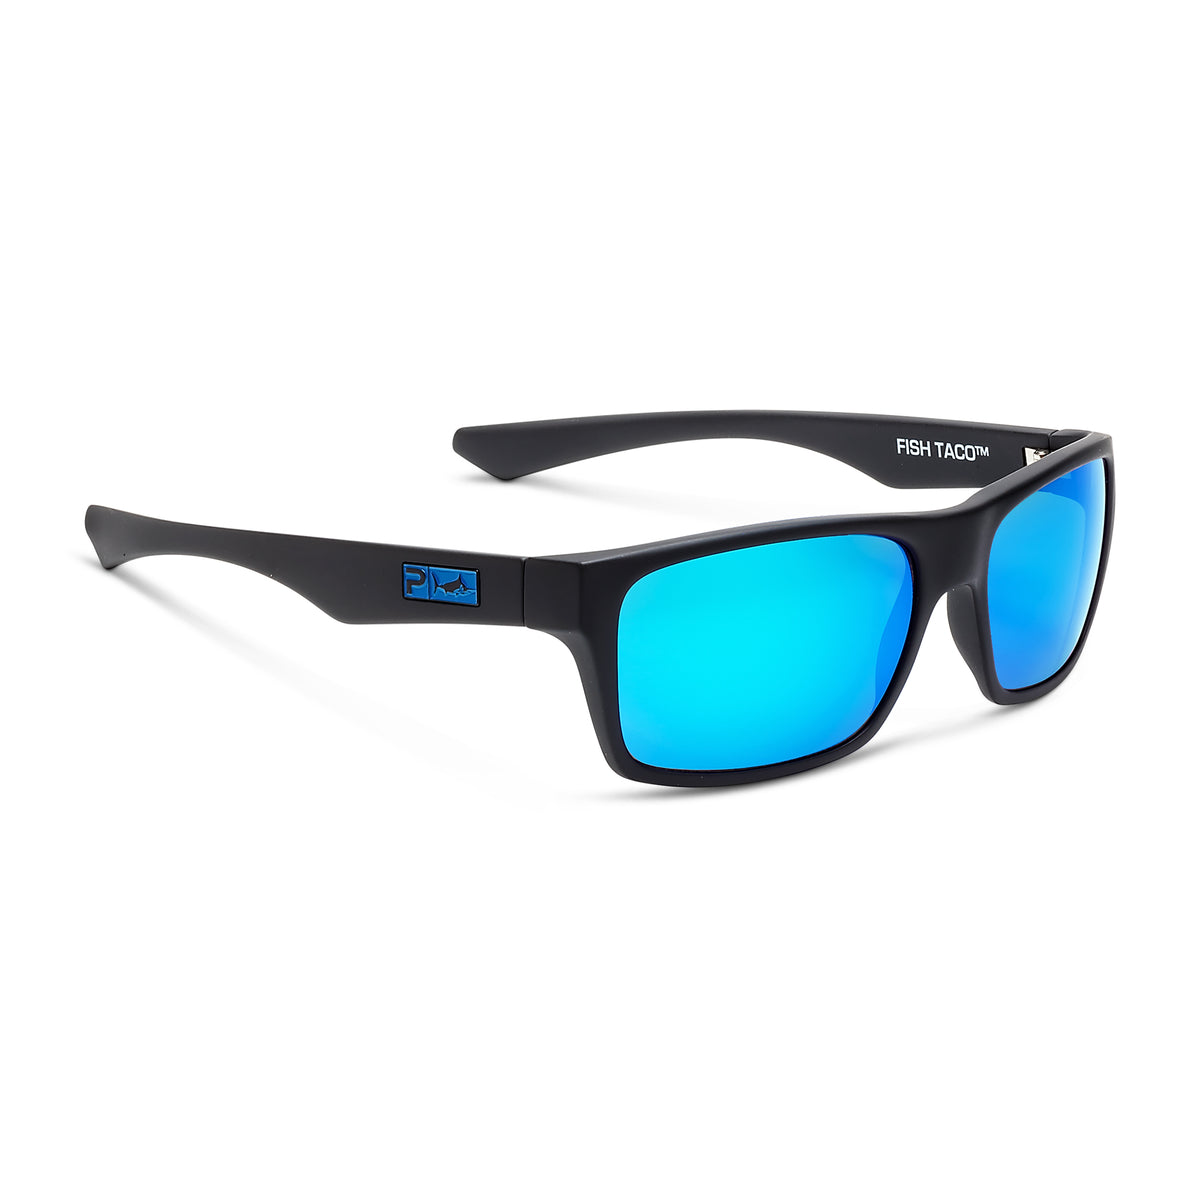 Fish Taco - Polarized Polycarbonate Lens Big Image - 1